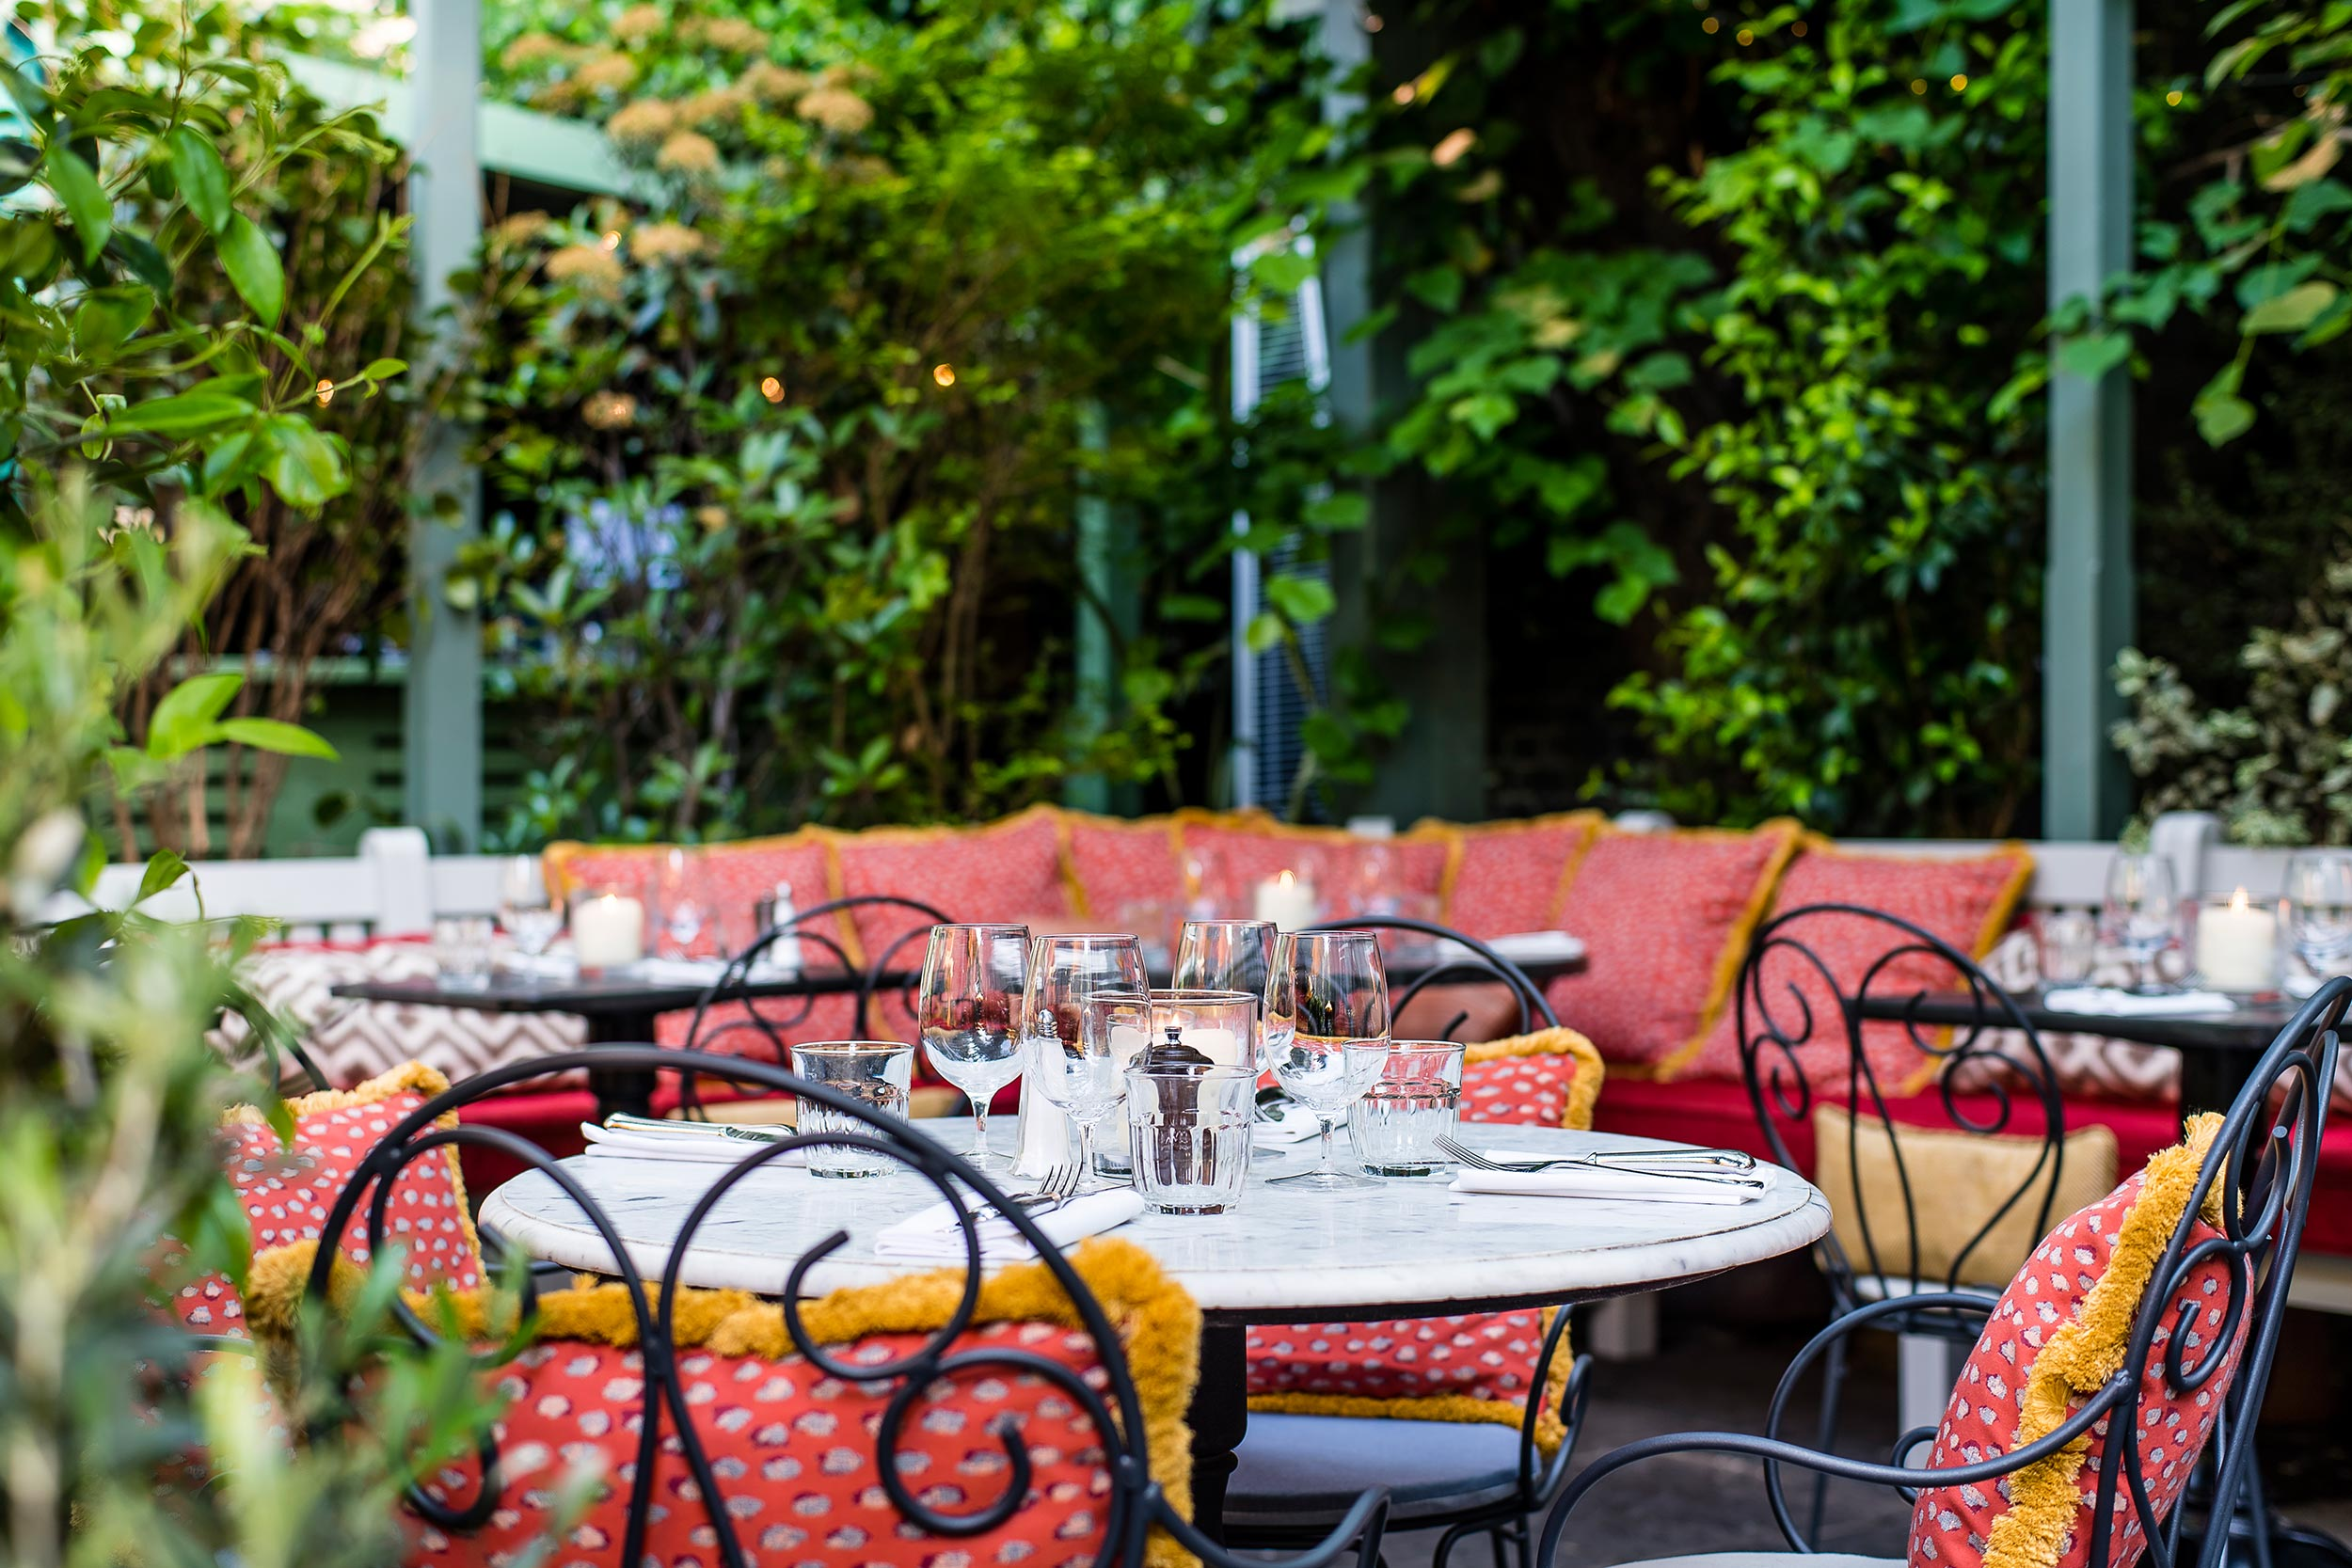 Book A Table The Ivy Chelsea Garden London